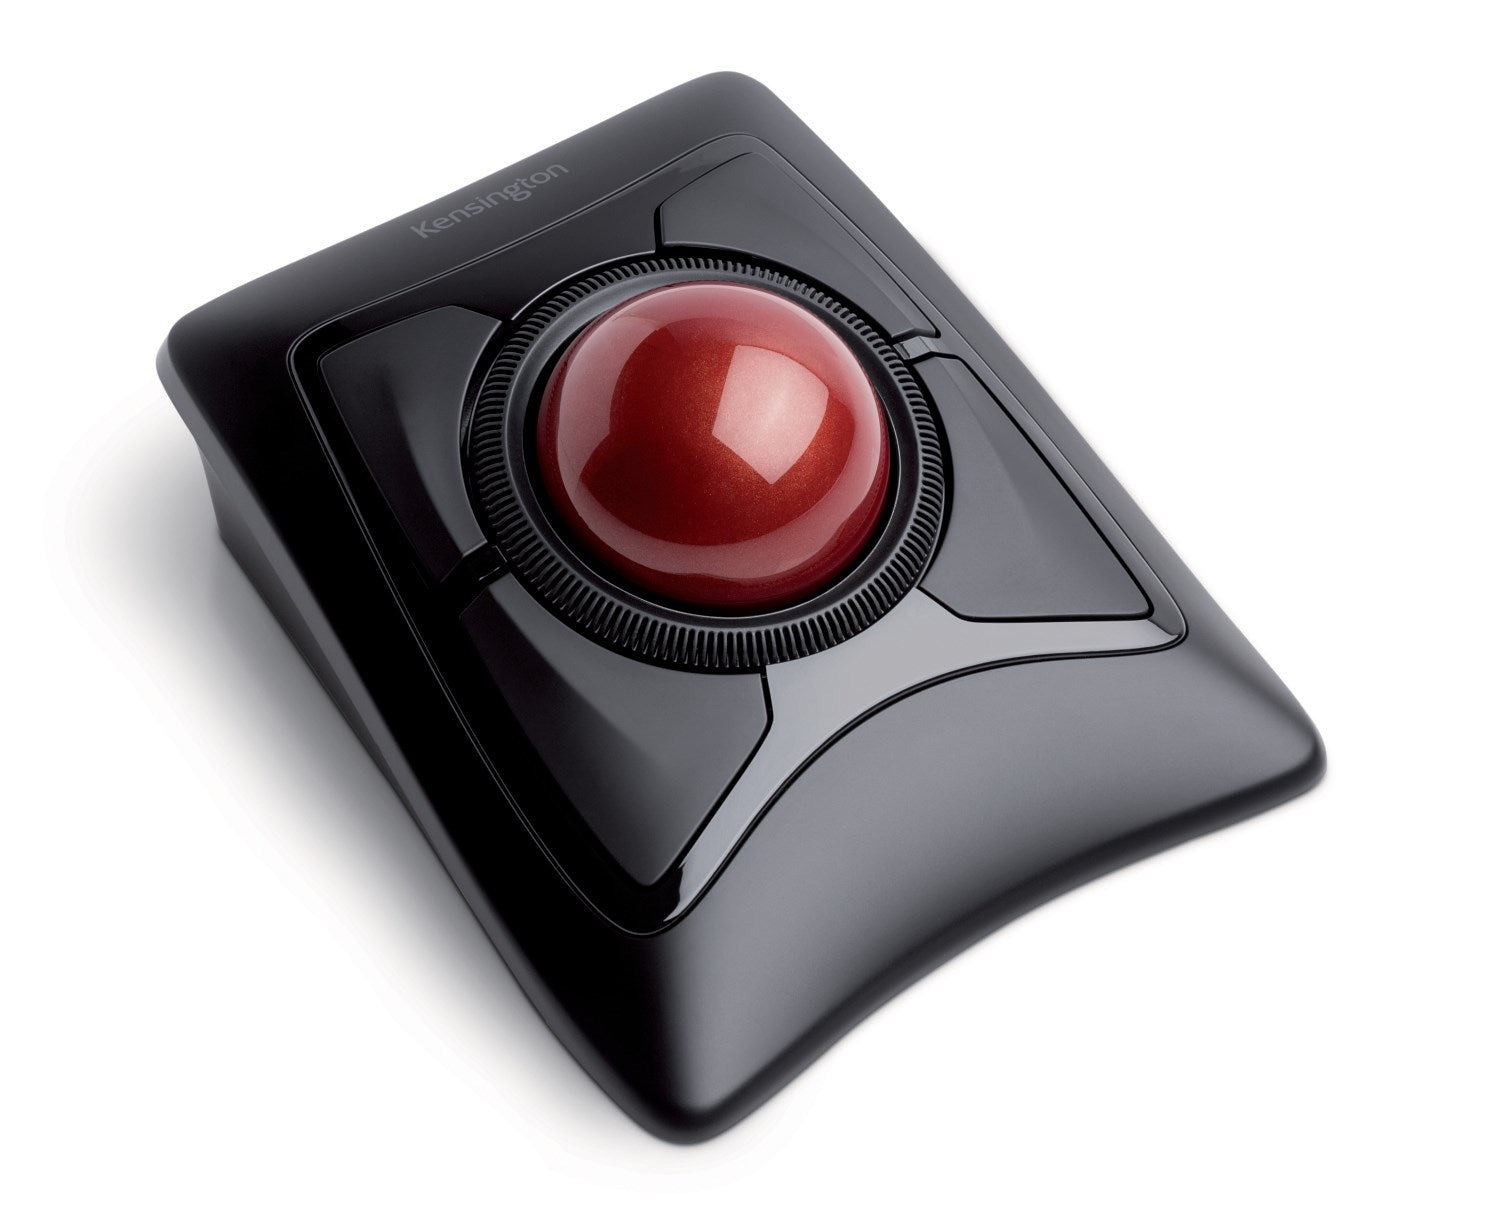 Kensington Trackball Expert Mouse Wireless, Black